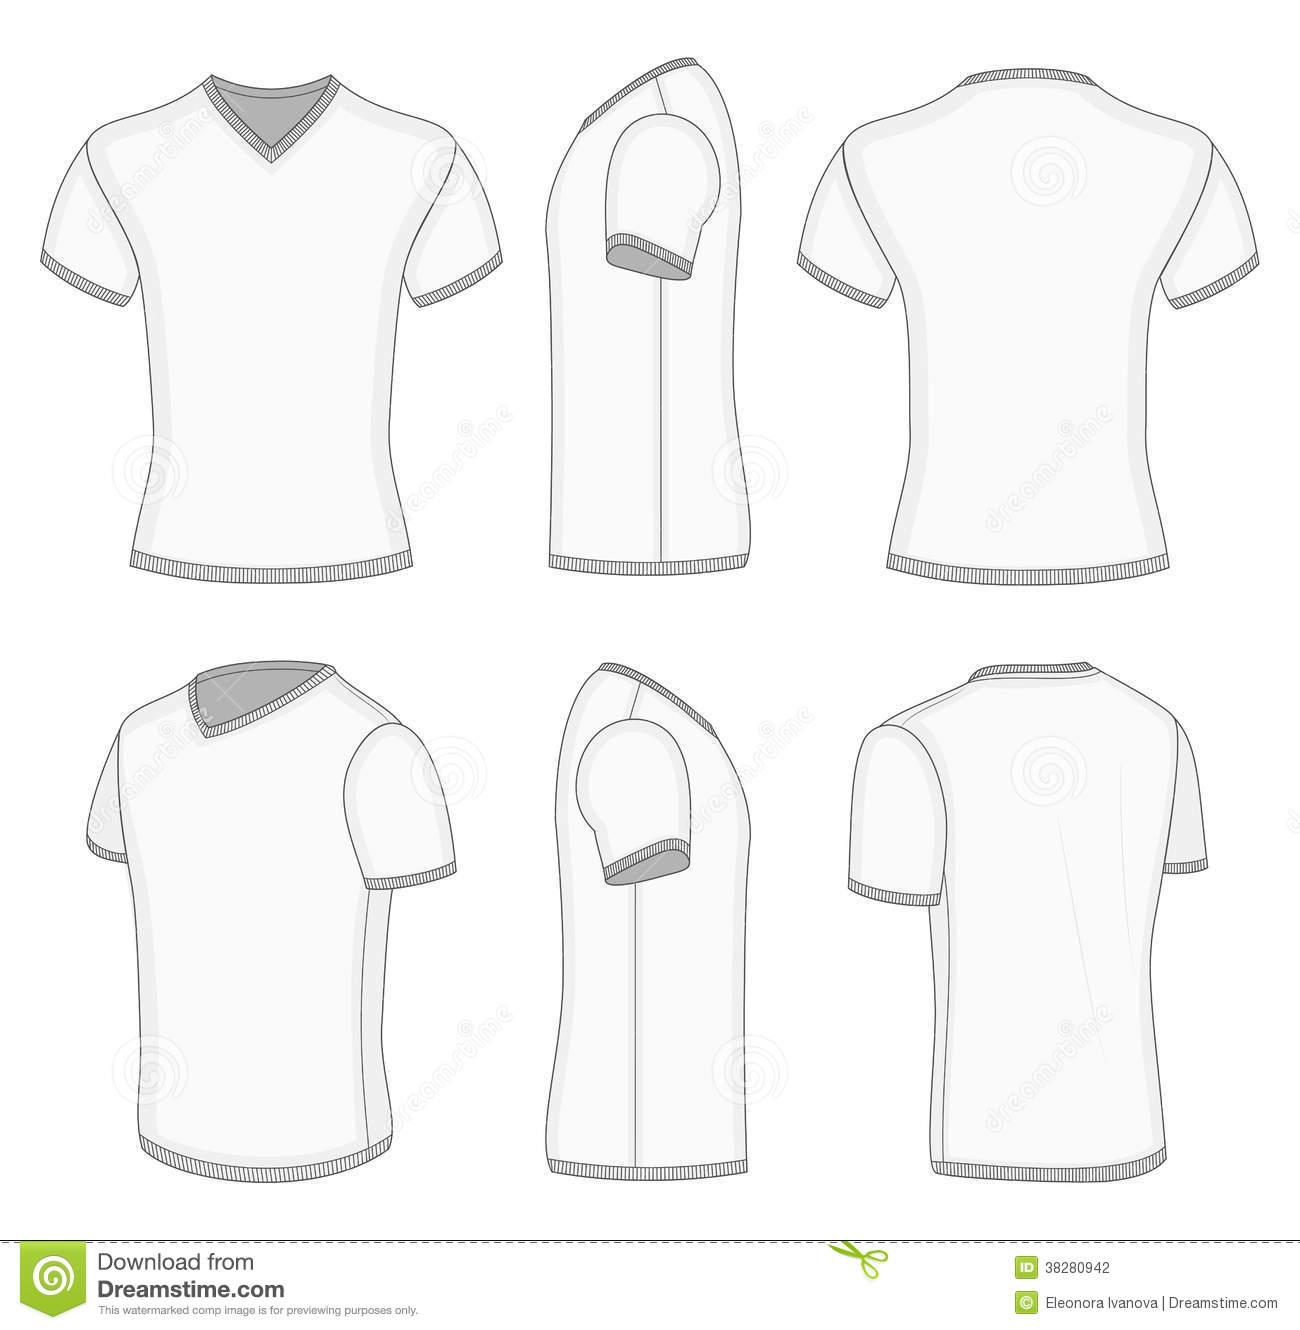 FootballBrothersHalloweenCostume moreover Stock Illustration White Male T Shirt Front likewise 20956945 Pepe The Frog together with Blank Sweatshirt Template Front And Back Vector 7936457 together with Adidas Originals Logo Coloring Pages Sketch Templates. on t shirt template